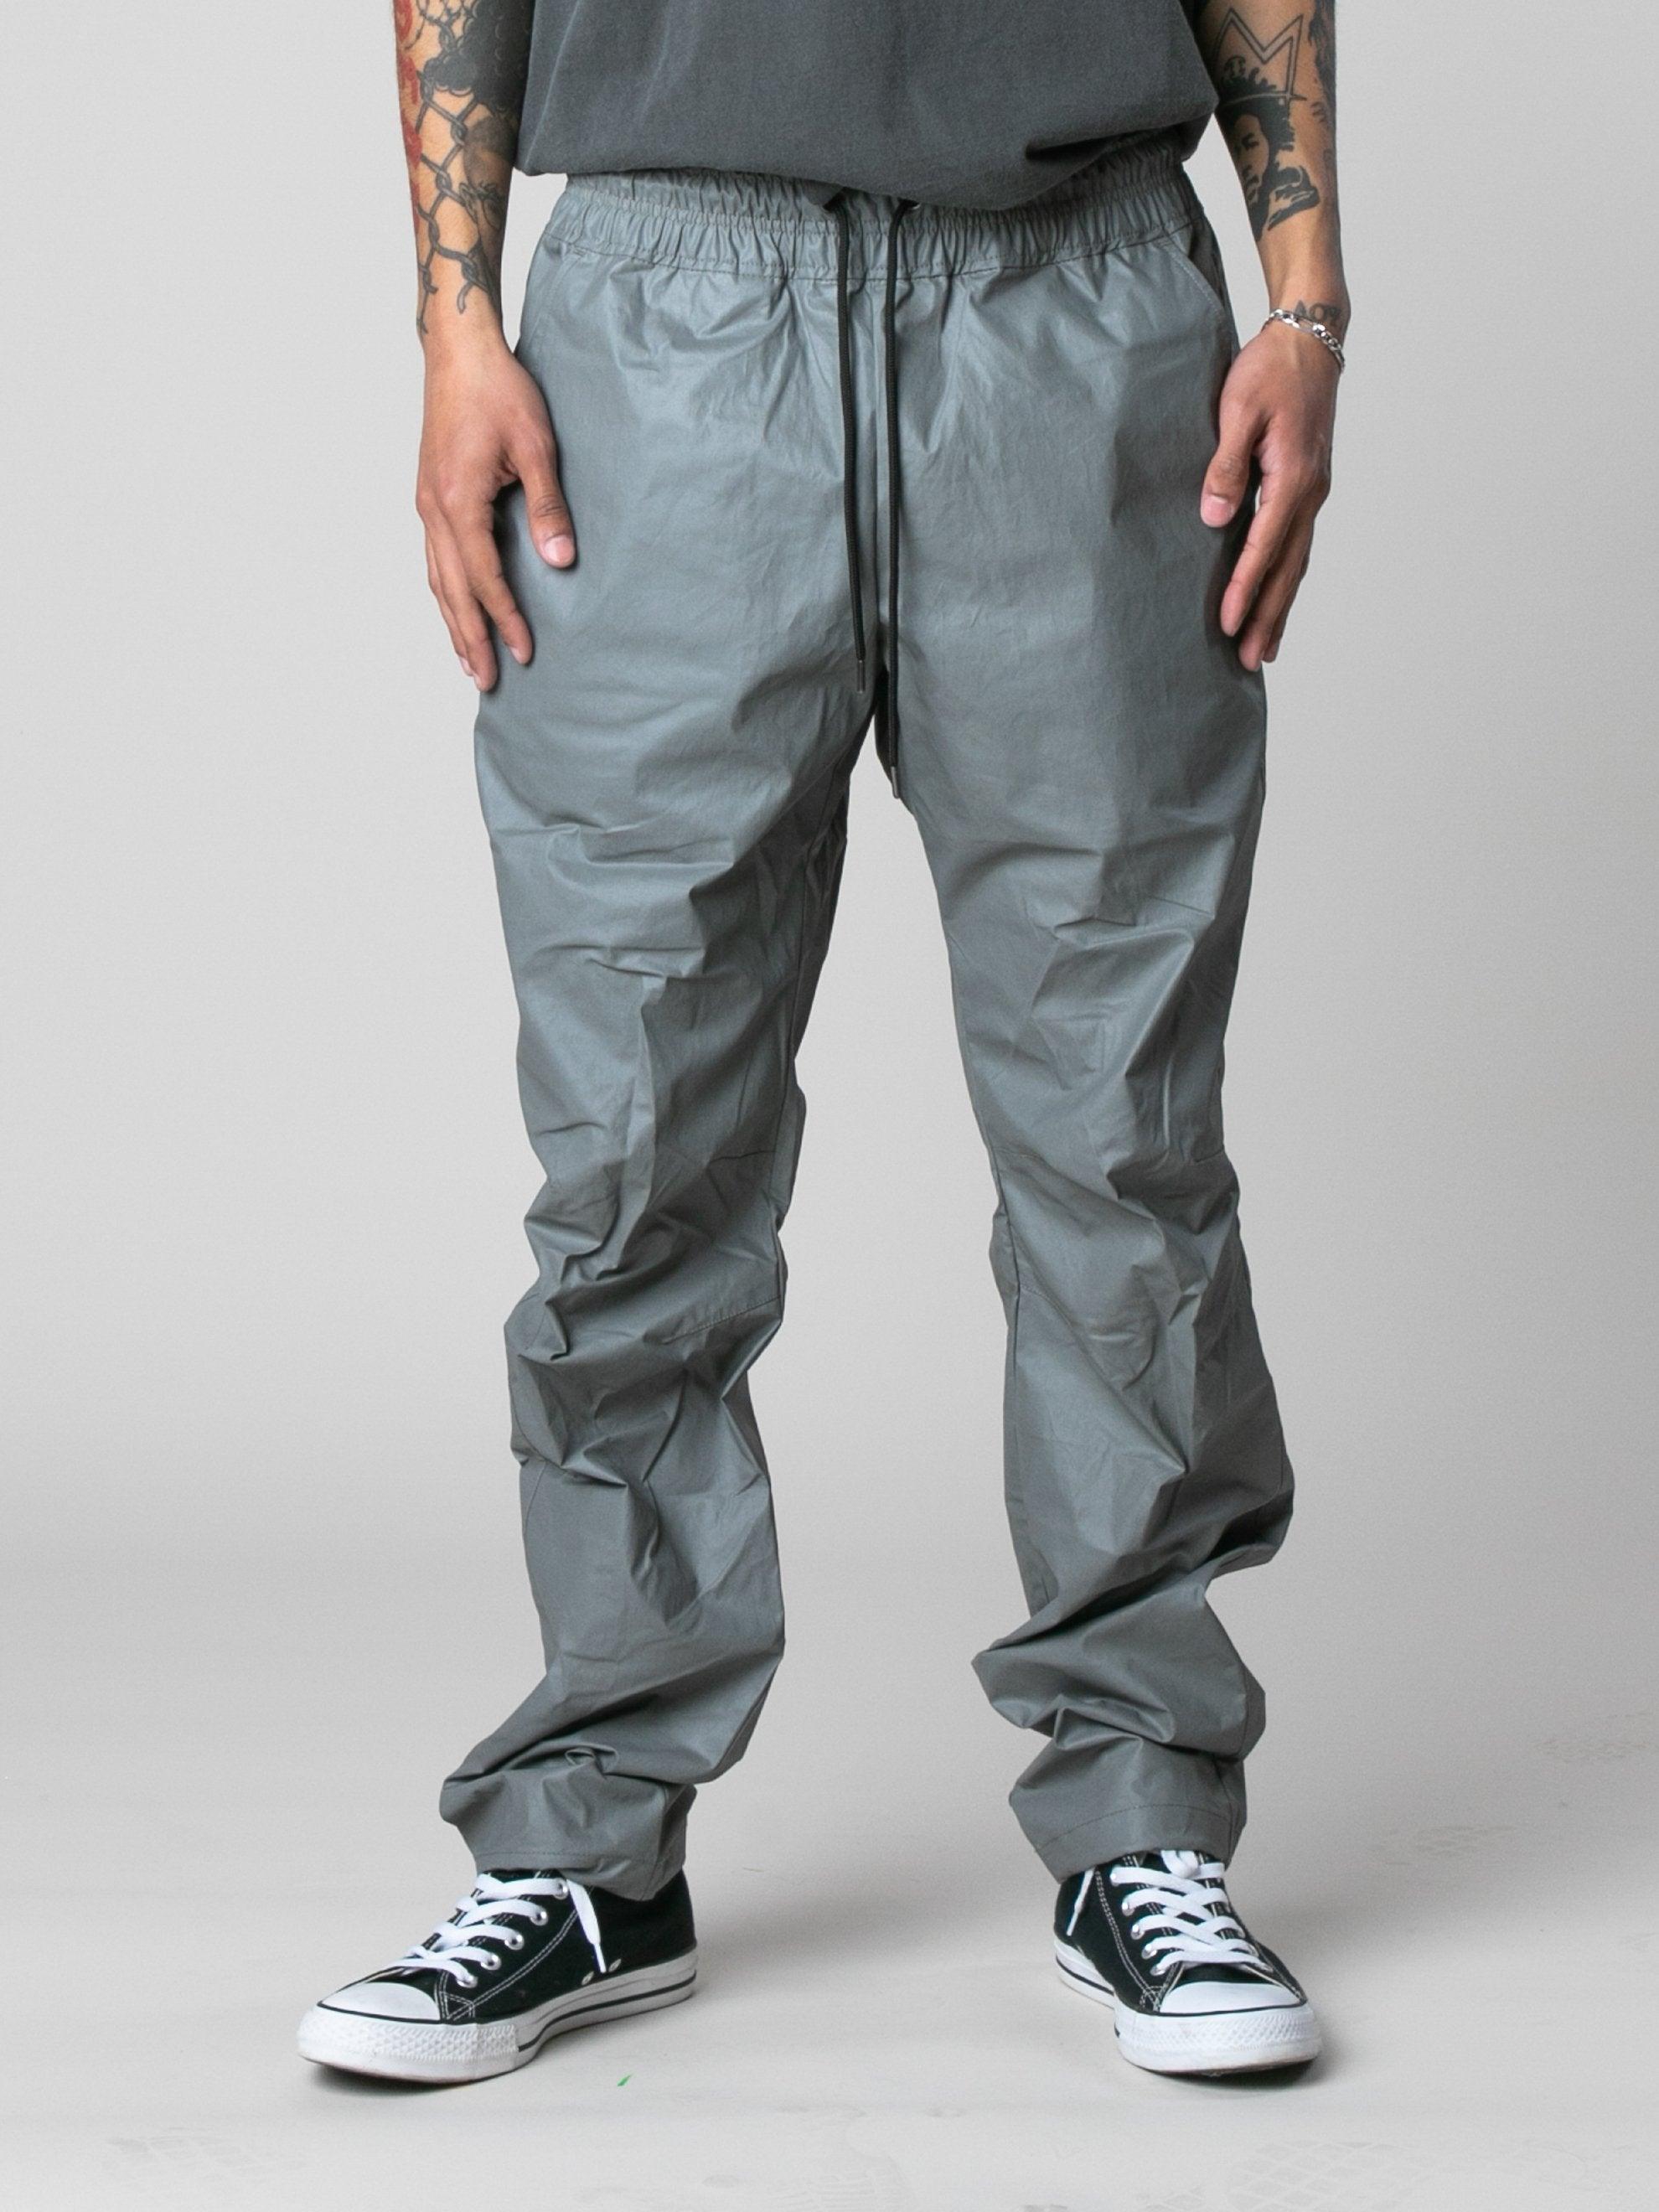 Carbon Sochi Sweatpants 2